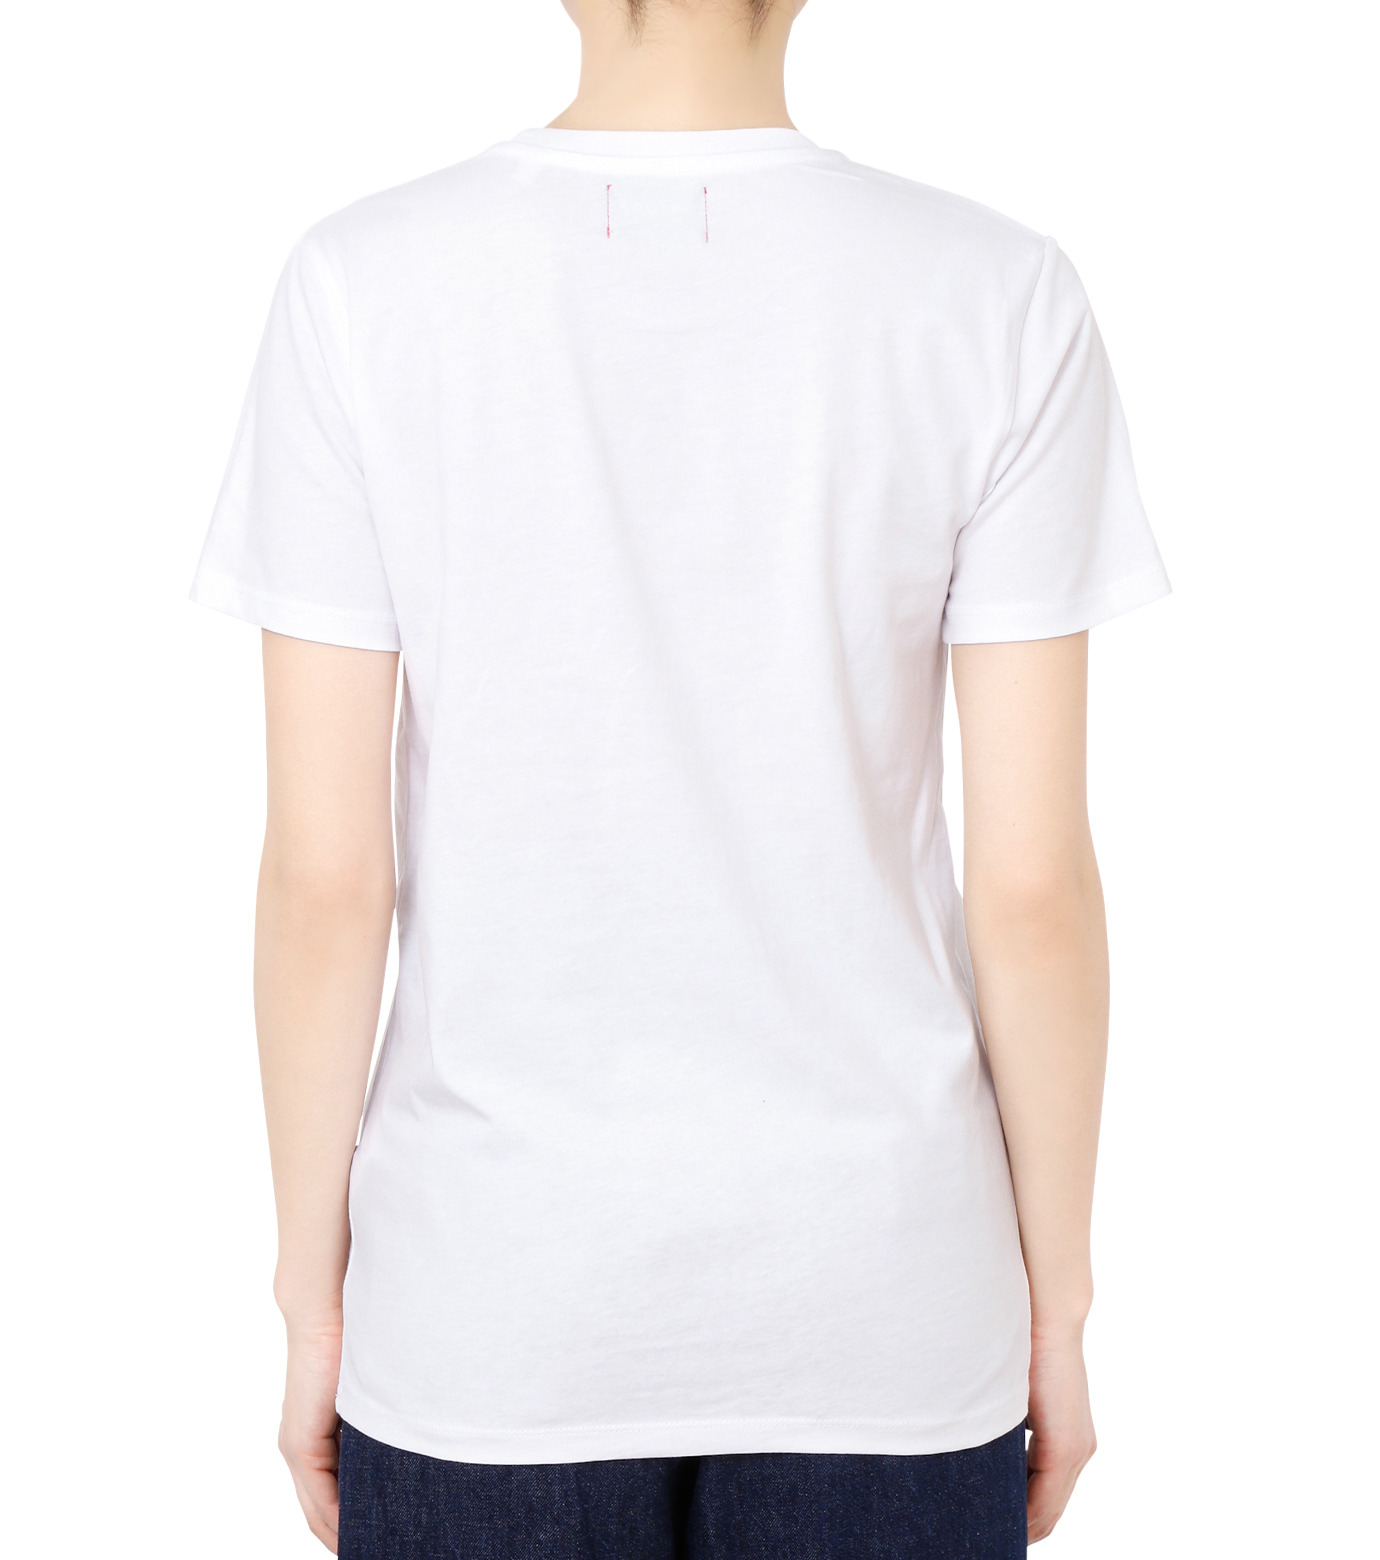 No One(ノーワン)のBELLEVILLE HILLS Logo T-shirt-WHITE(カットソー/cut and sewn)-SS910W-4 拡大詳細画像2